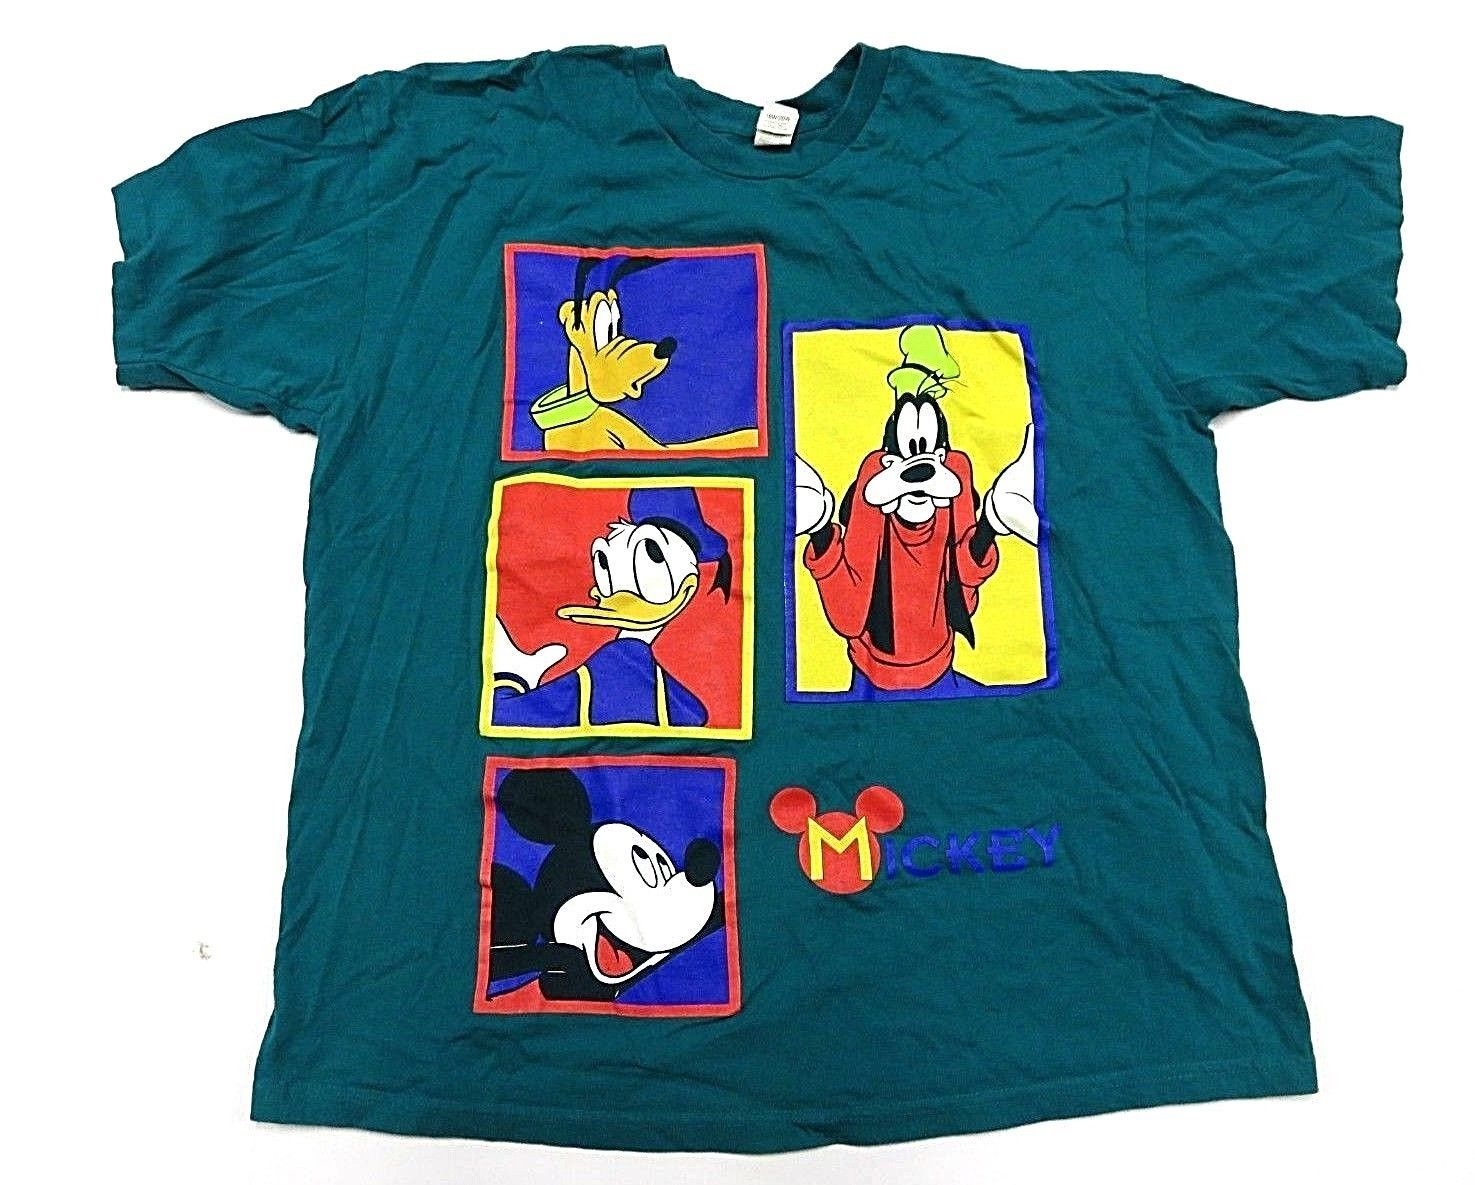 170676630 57. 57. Previous. DISNEY Mickey Mouse Characters Teal Graphic T-Shirt  Women's Plus Size 18W-20W